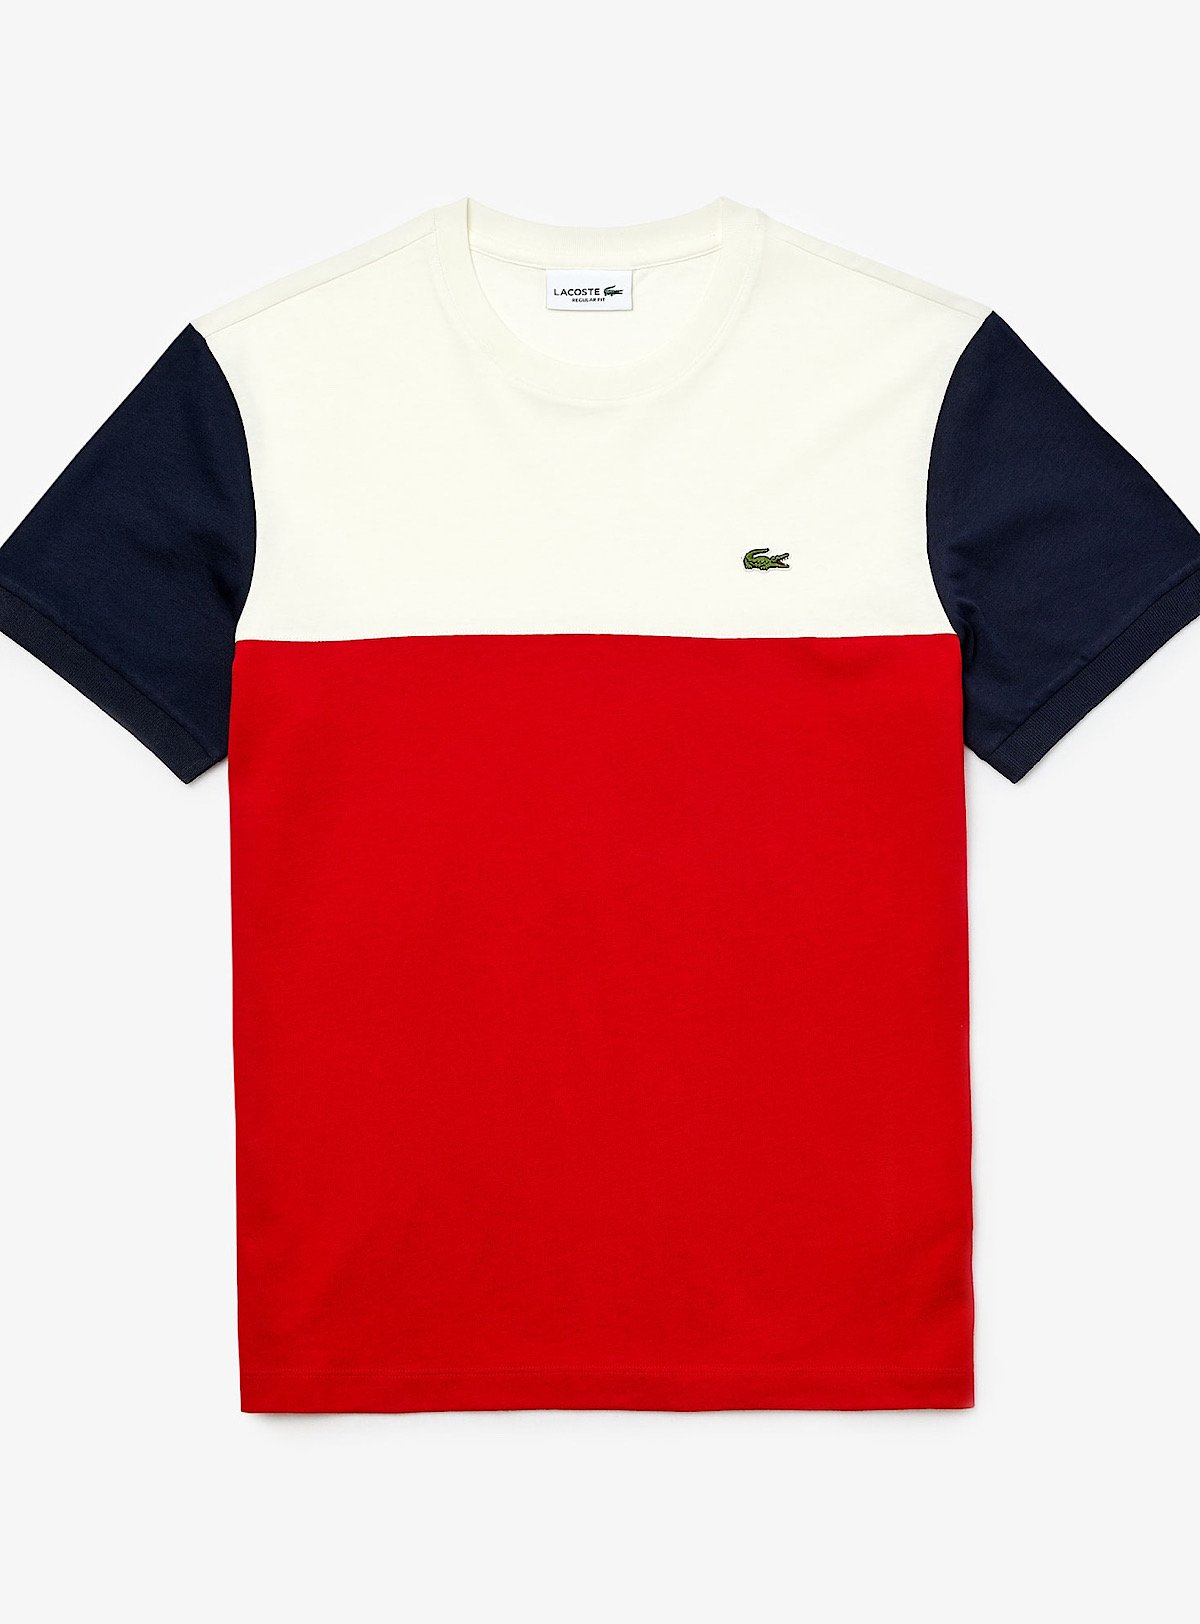 Lacoste T-Shirt - Color Block - Red/White - TH5103